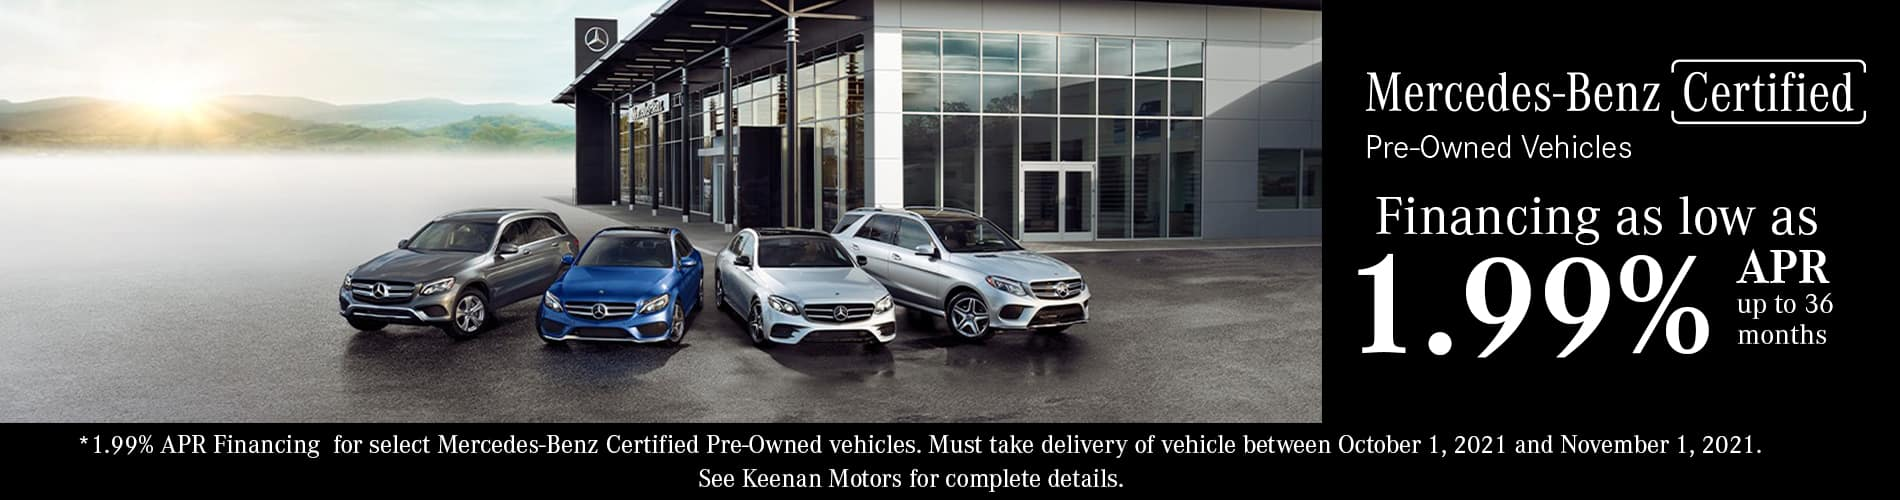 Mercedes-Benz Certified Pre-Owned Financing as low as 1.99% APR for 36 months at Keenan Motors